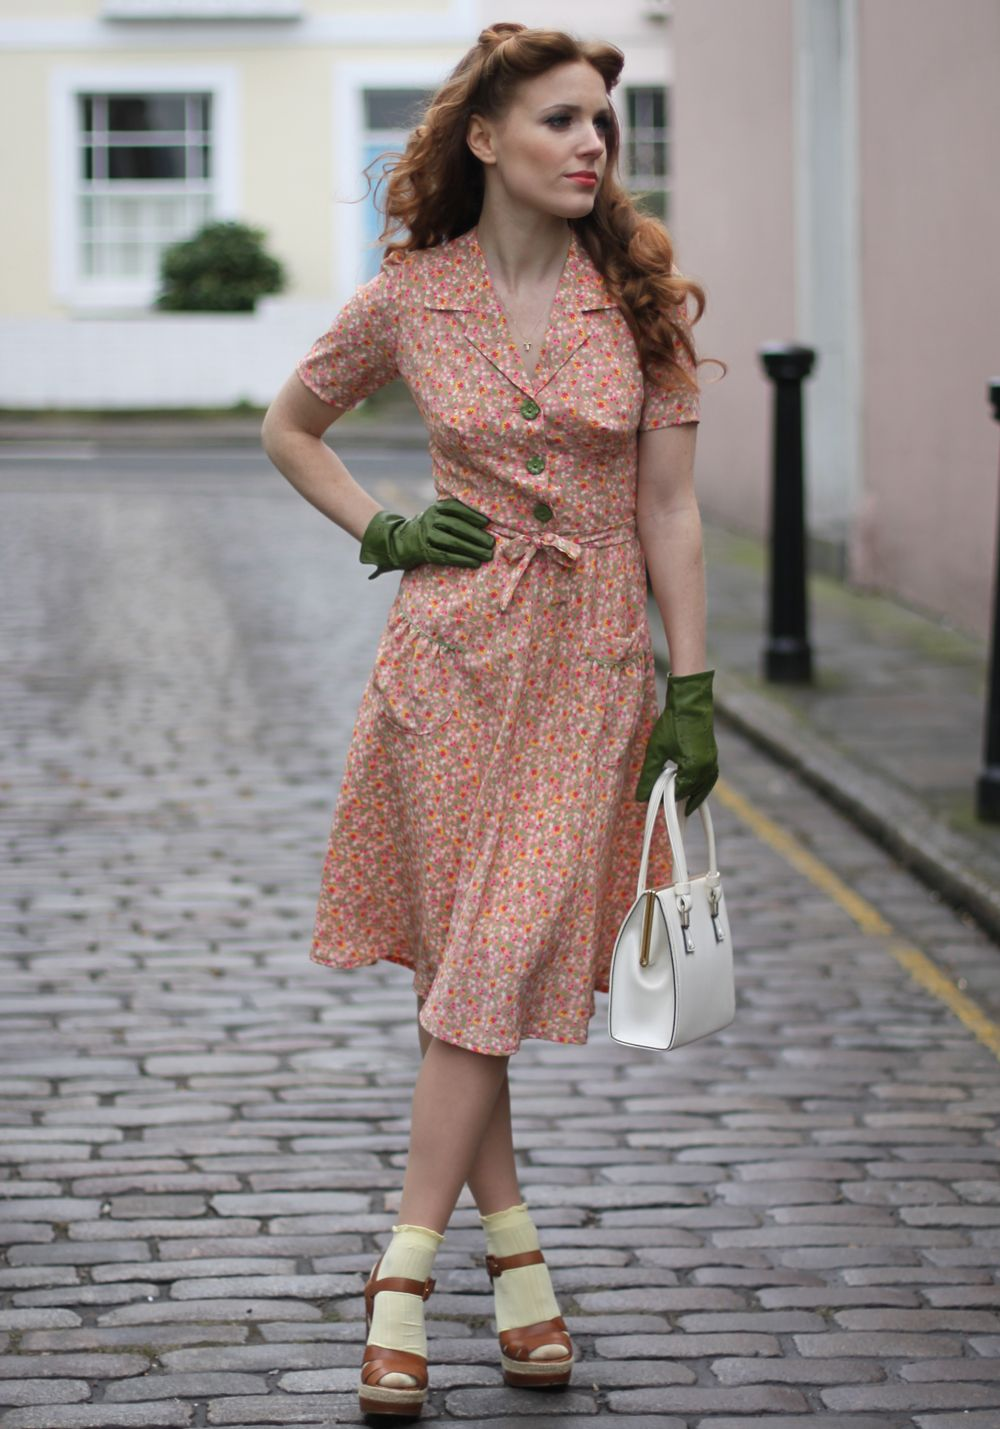 The Real And The Inspired By 1940s Fashion: Pair Short Sleeve Dresses With Leather Gloves- Adorable